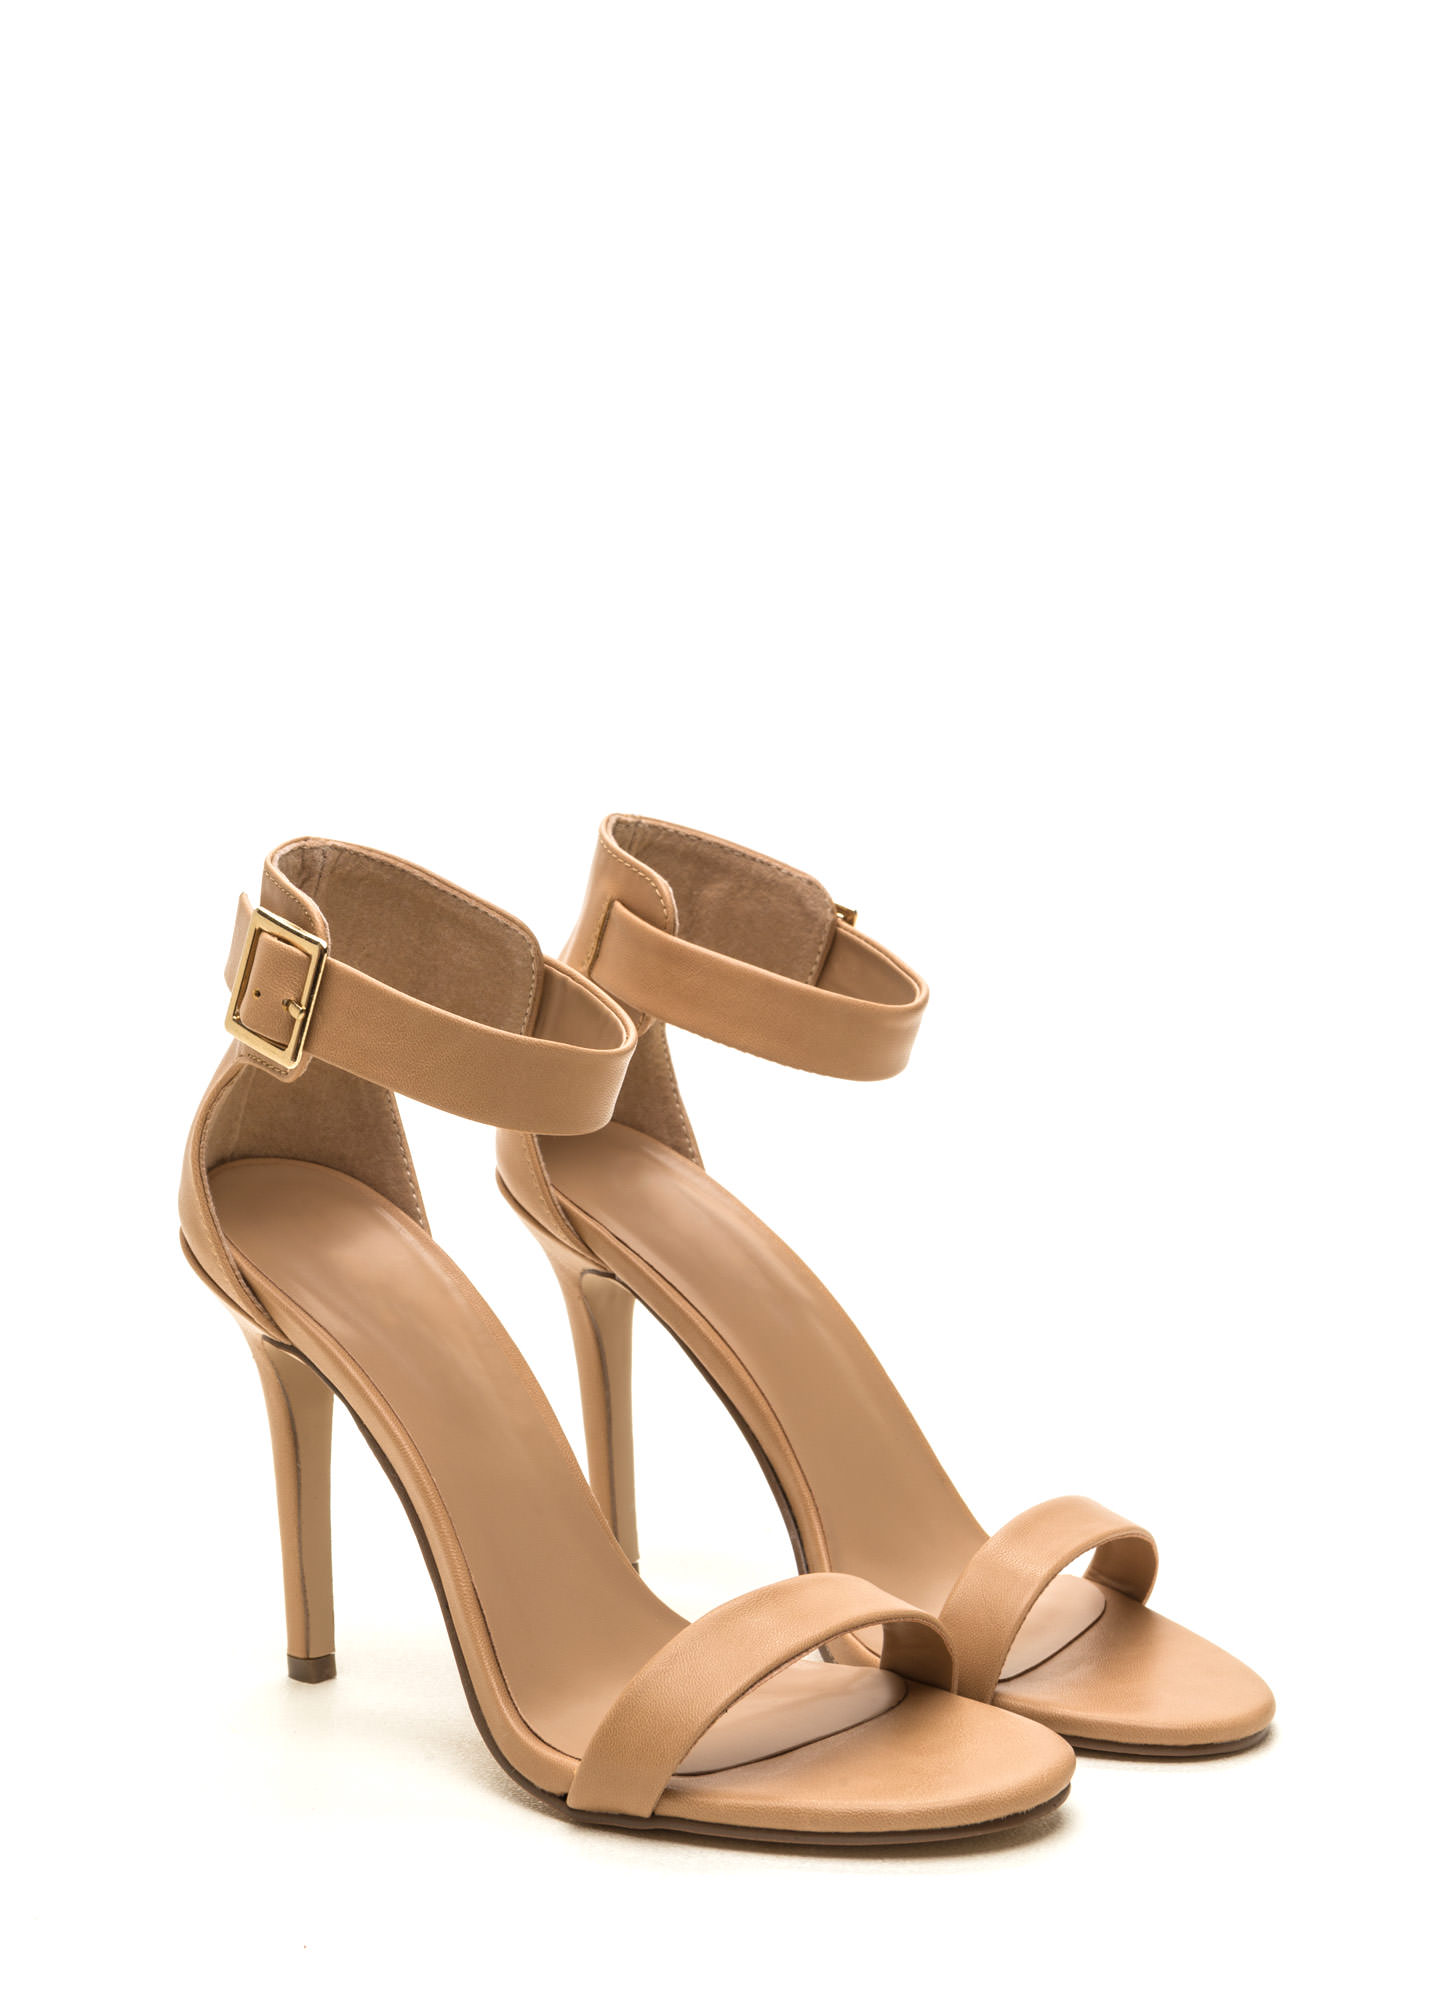 One Way Ticket Single-Sole Heels NATURAL